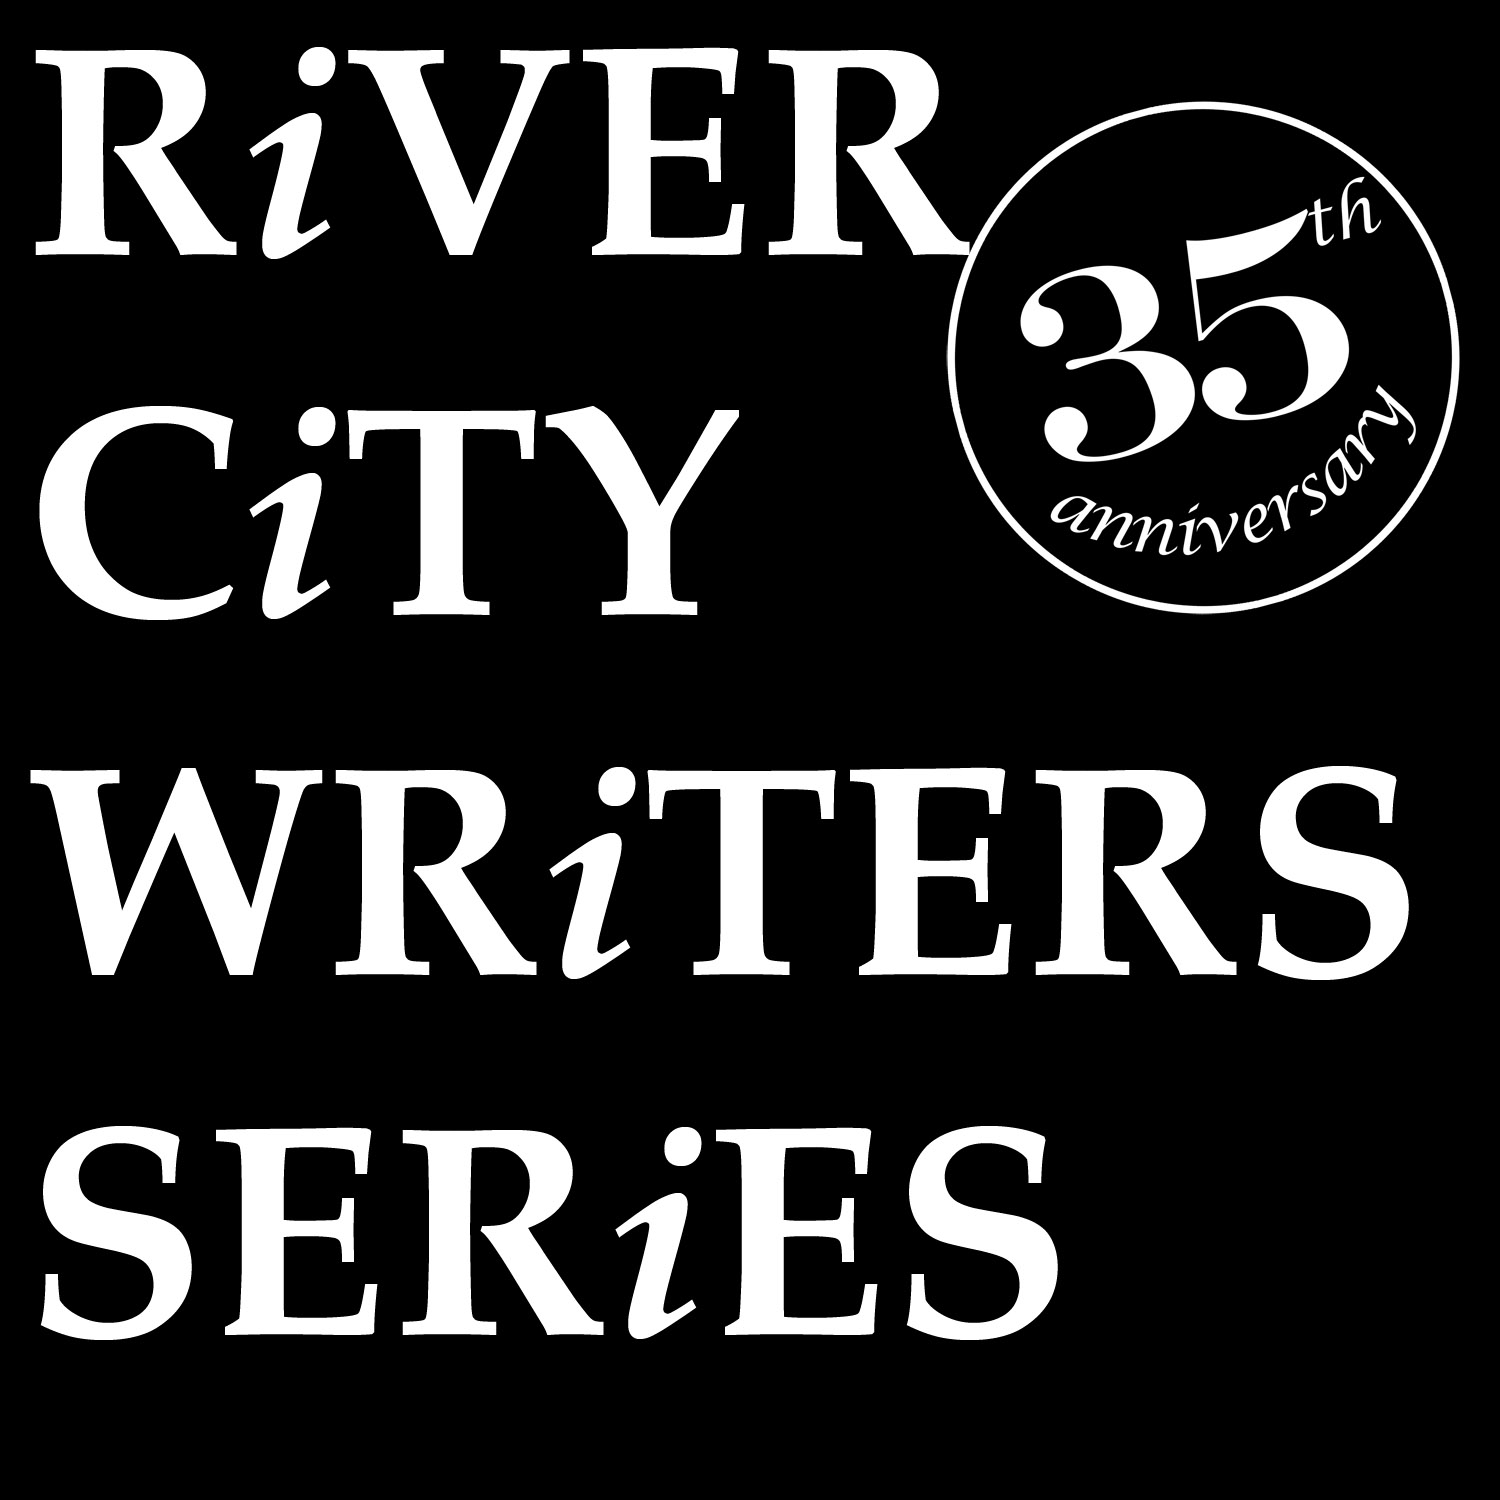 River City Writers' Series